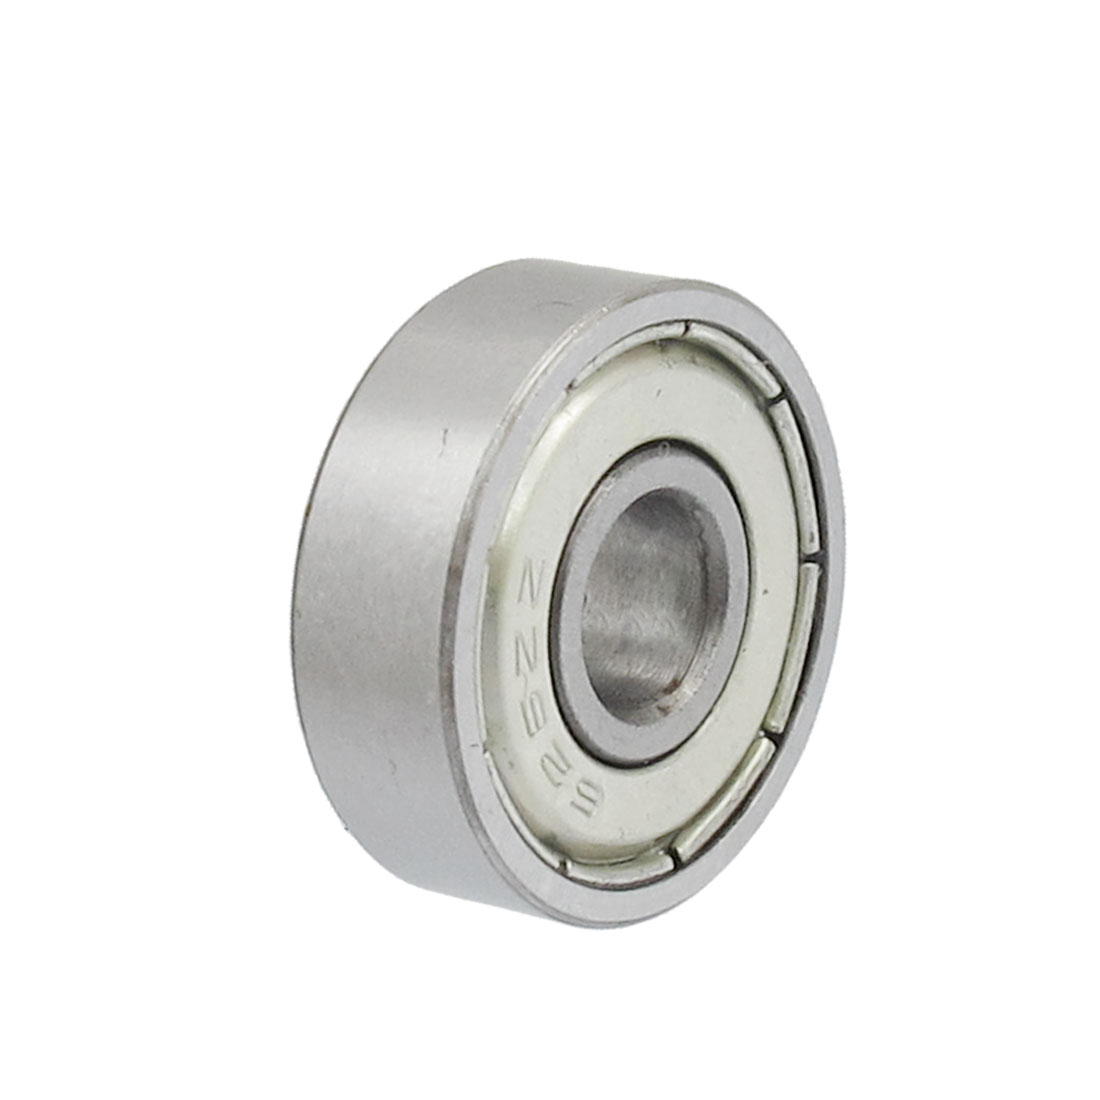 6 x 19 x 6mm 626 Shielded Miniature Deep Groove Radial Ball Bearing